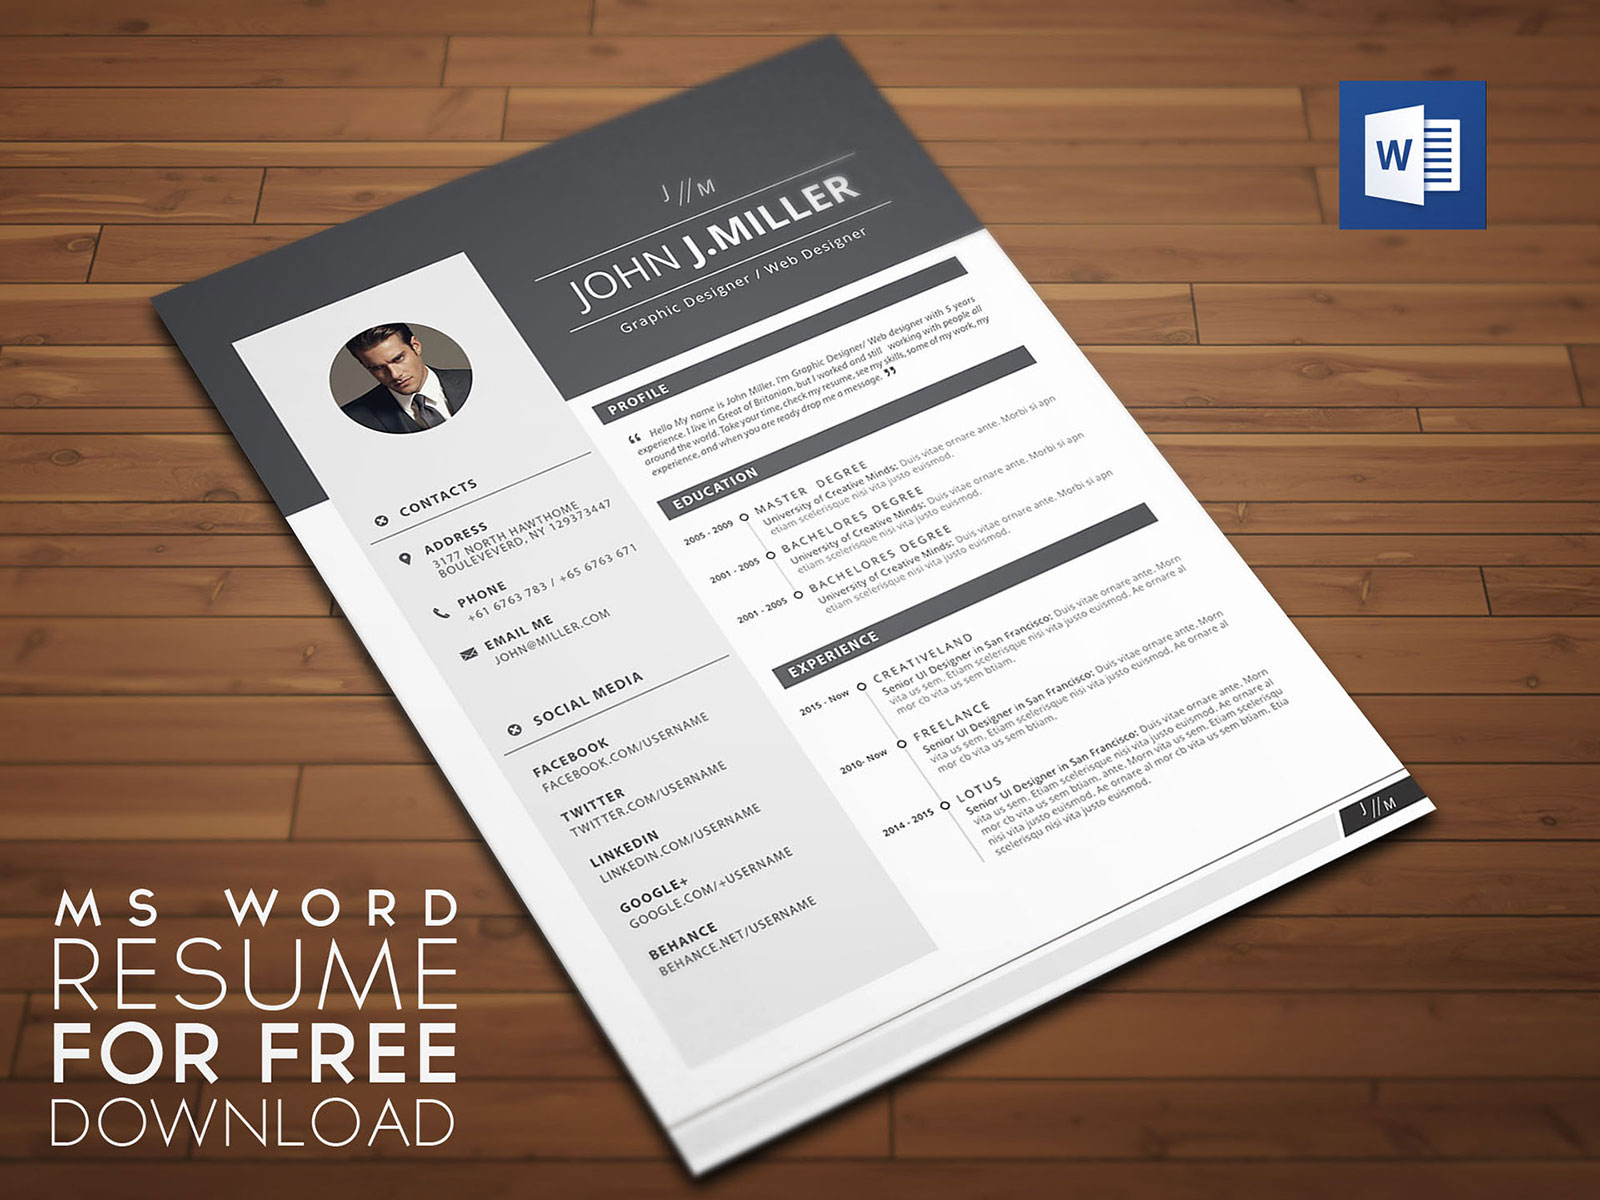 free resume cv template for ms word format good professional templates in science writing Resume Professional Resume Templates 2018 Free Download